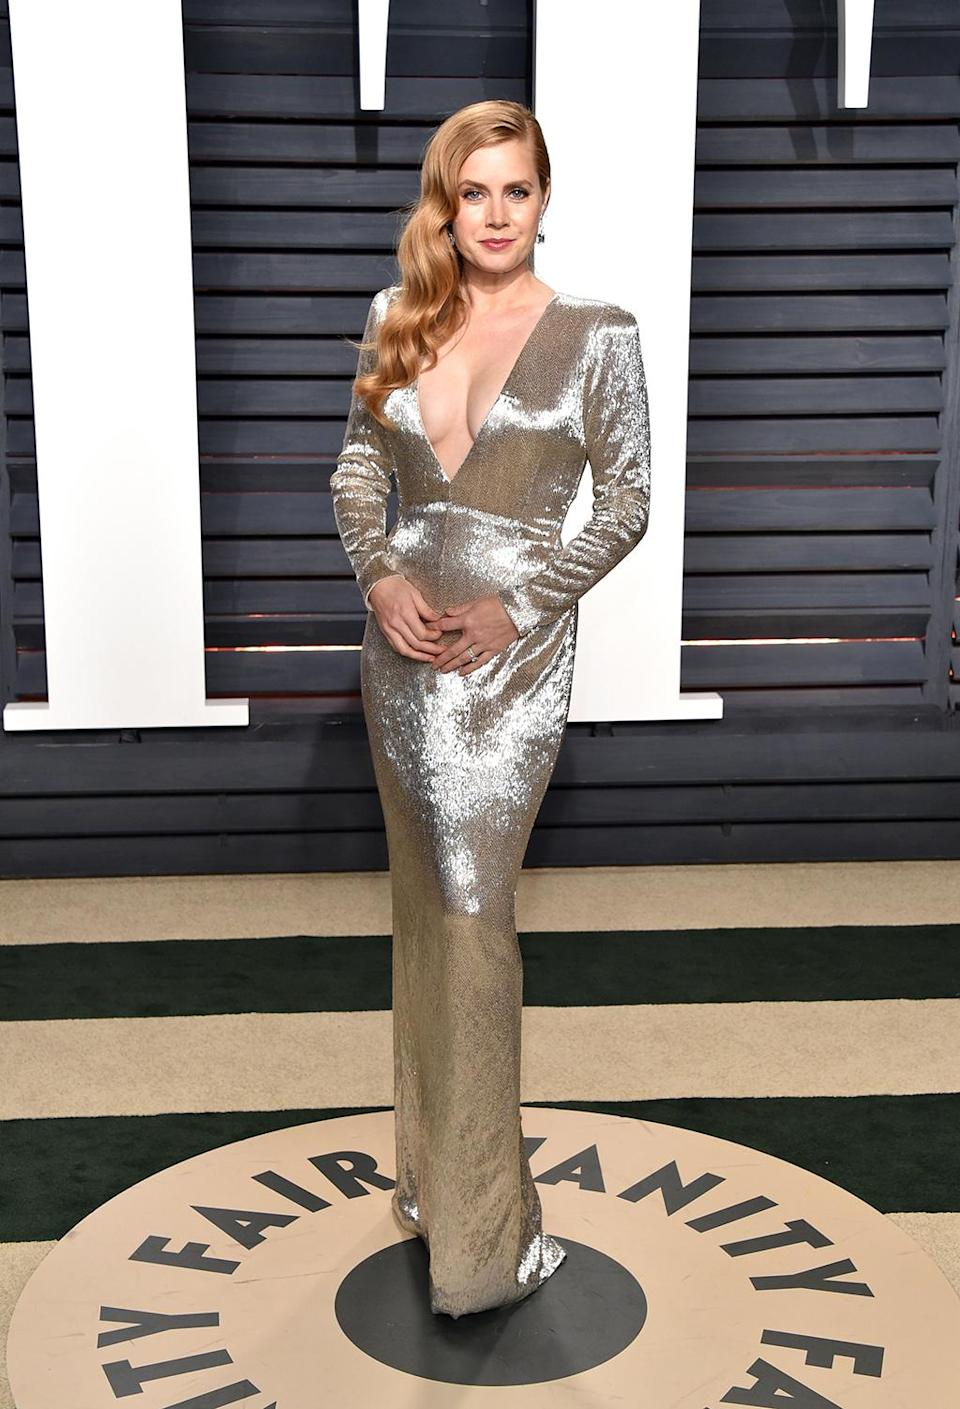 <p>Actress Amy Adams attends the 2017 Vanity Fair Oscar Party hosted by Graydon Carter at Wallis Annenberg Center for the Performing Arts on February 26, 2017 in Beverly Hills, California. (Photo by John Shearer/Getty Images) </p>